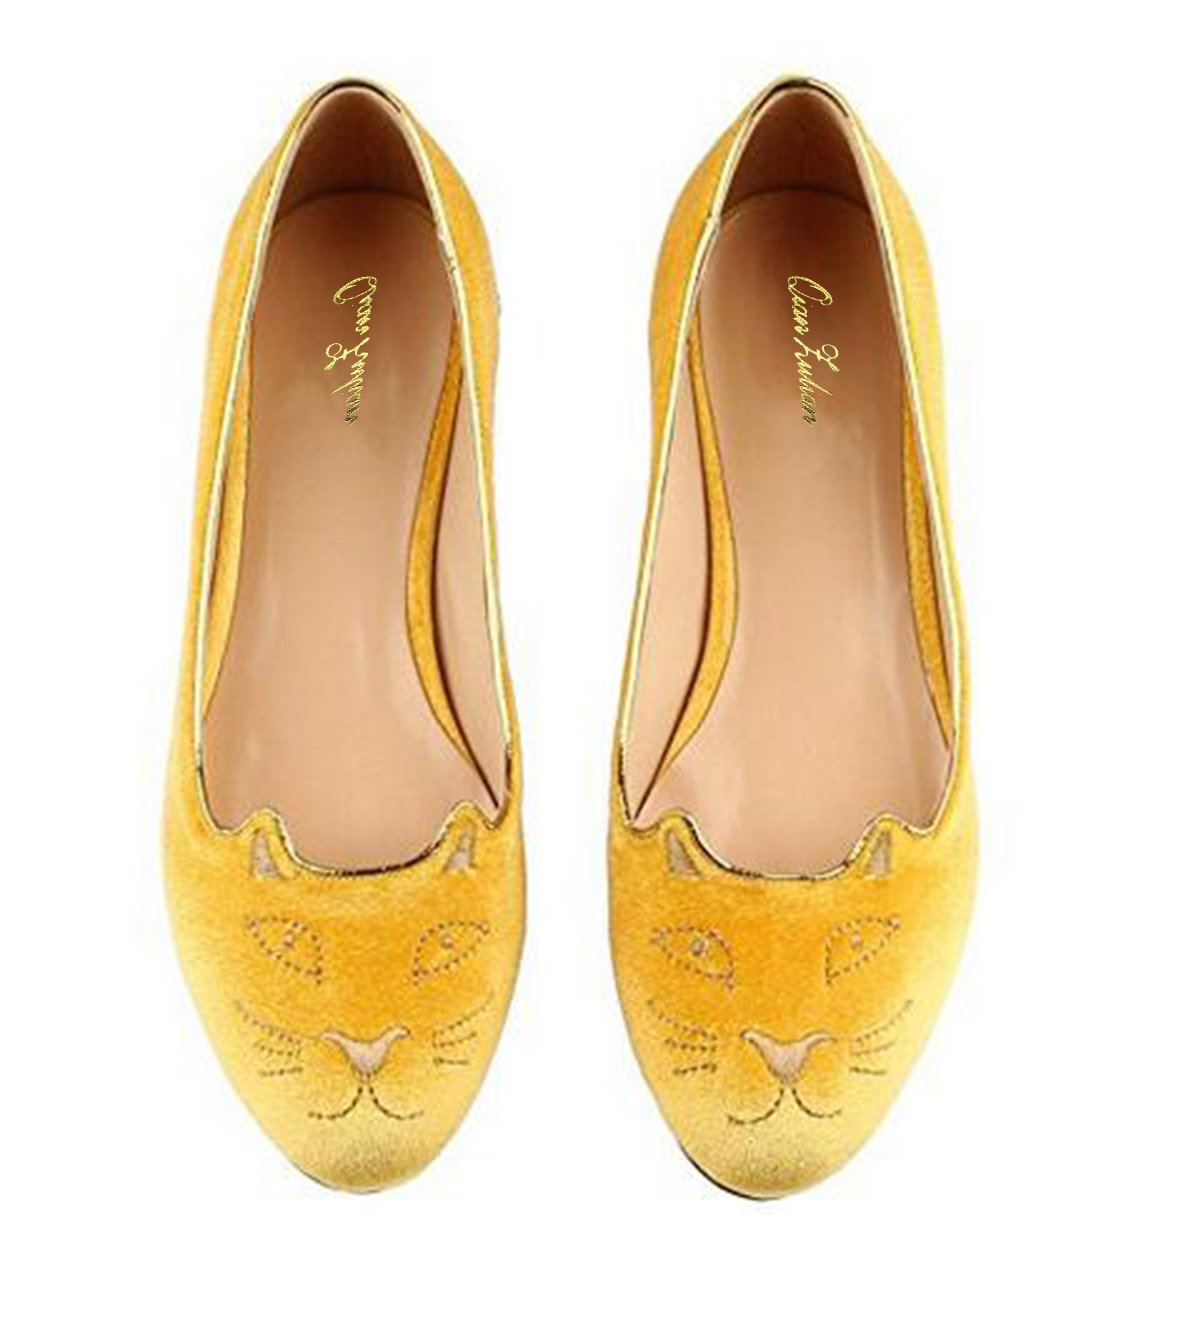 QianZuLian Womens Flats Cat Shape Pumps Round head Slip On Dress Shoes Comfort for Home Leisure On foot B0757P183S 11.5 B(M) US|Yellows